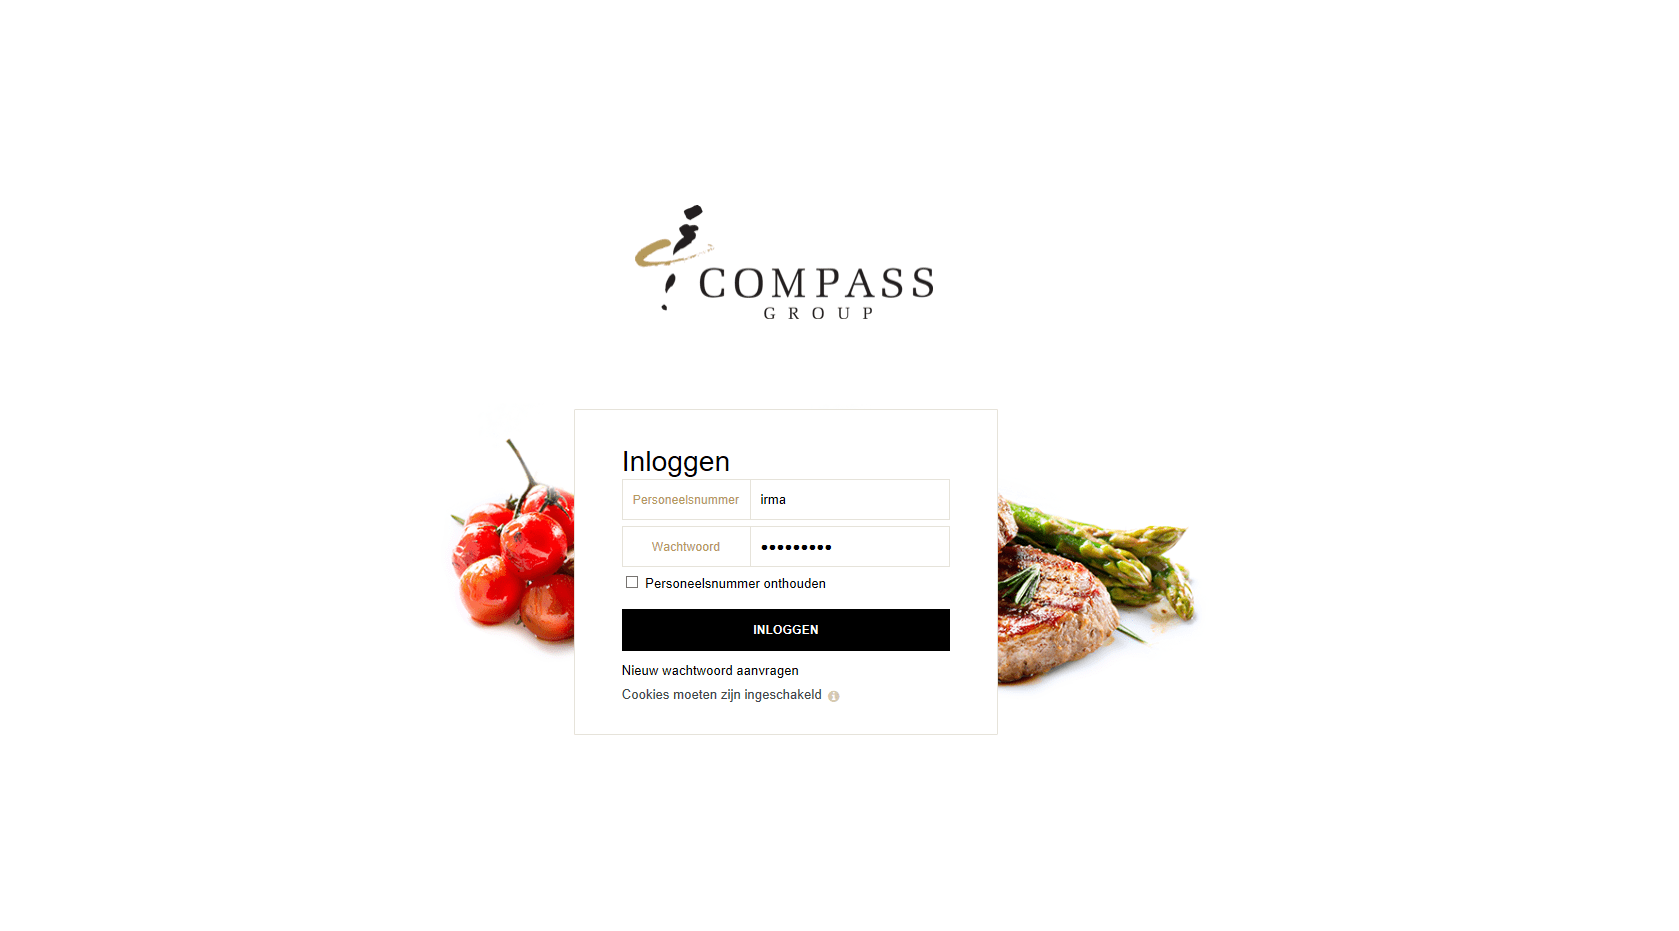 Compass Group trains its international catering team with